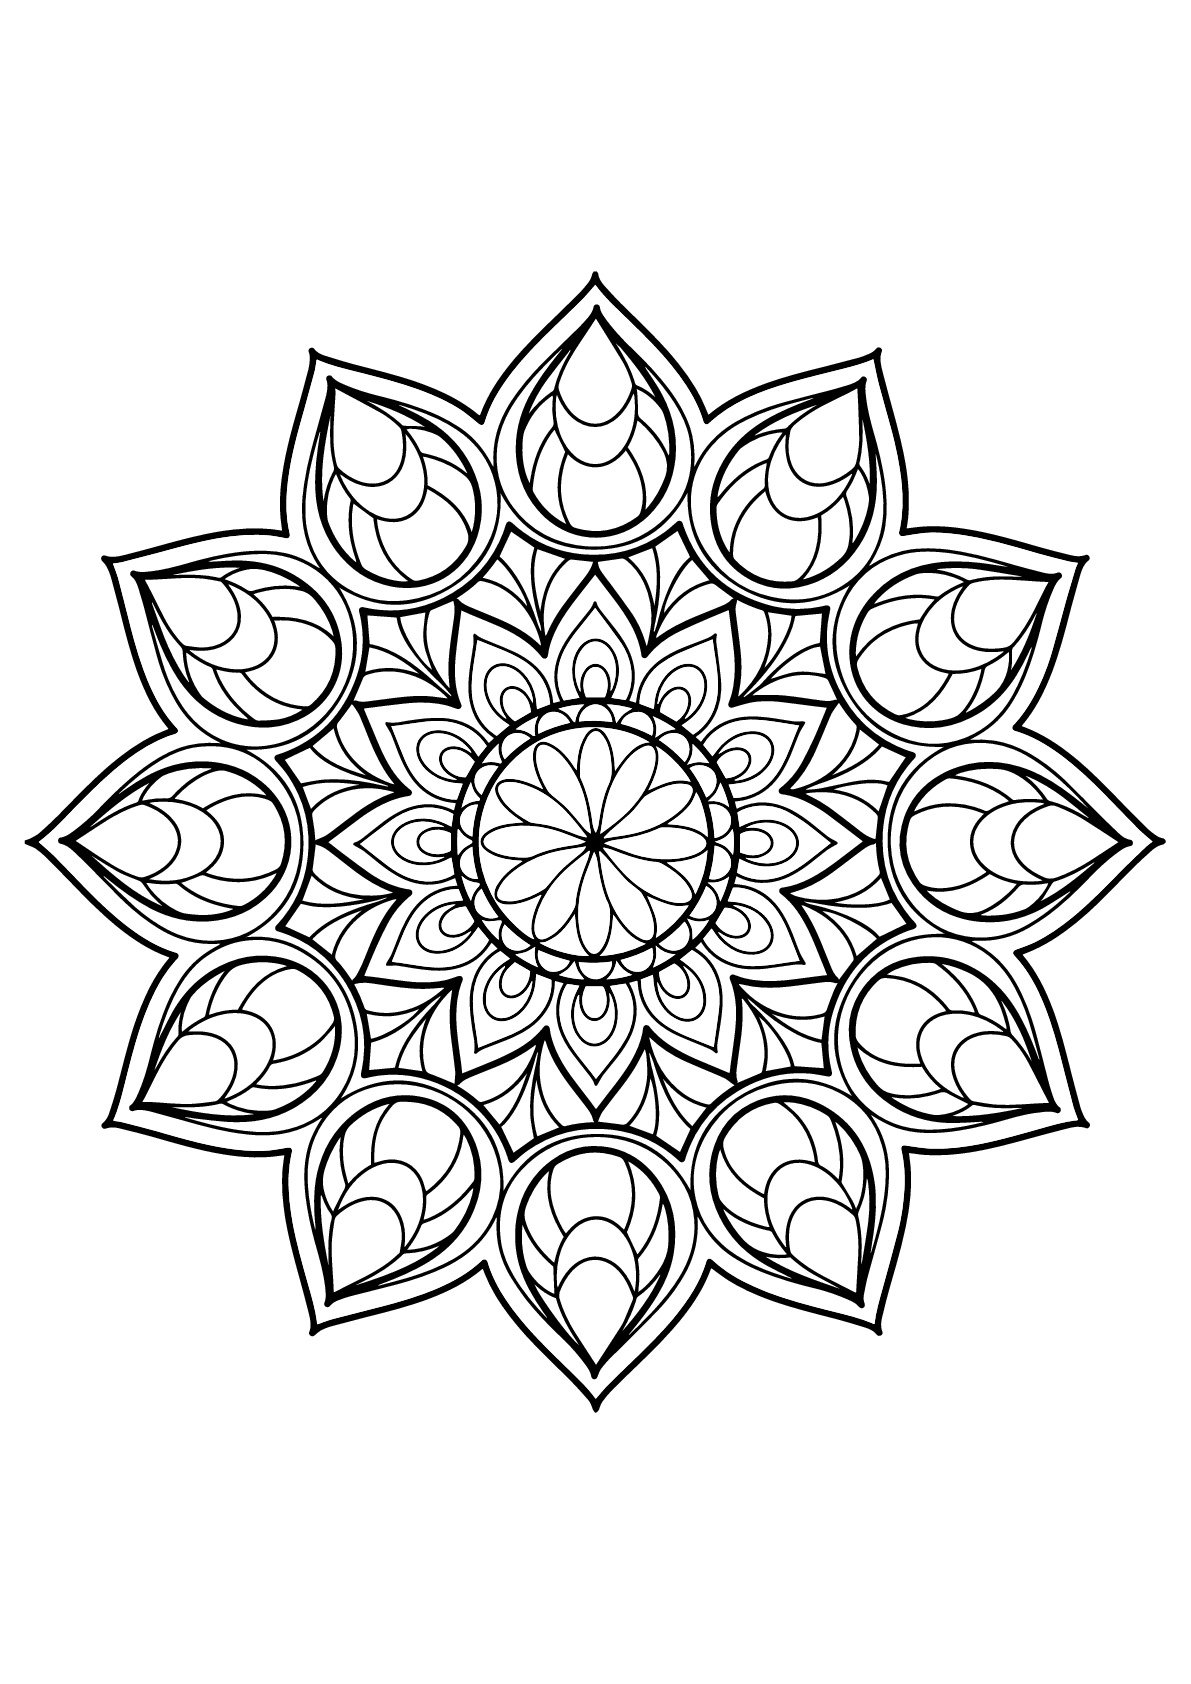 mandala pictures to color mandala to download in pdf 6 malas adult coloring pages mandala color to pictures